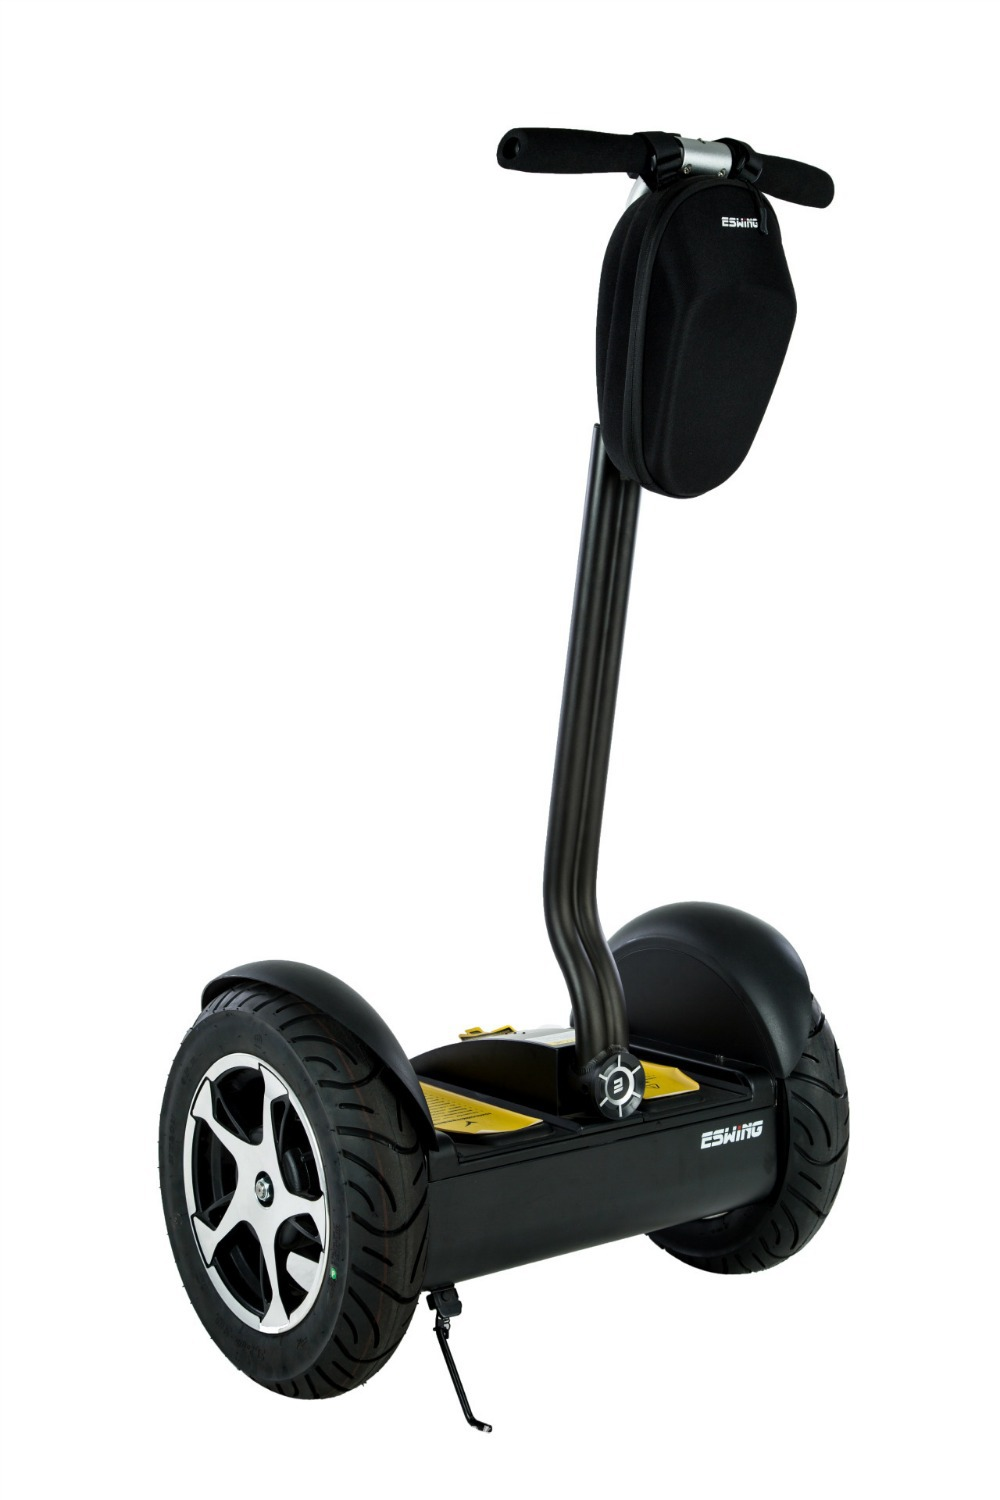 two wheel balancing motorcycle electric scooter self. Black Bedroom Furniture Sets. Home Design Ideas